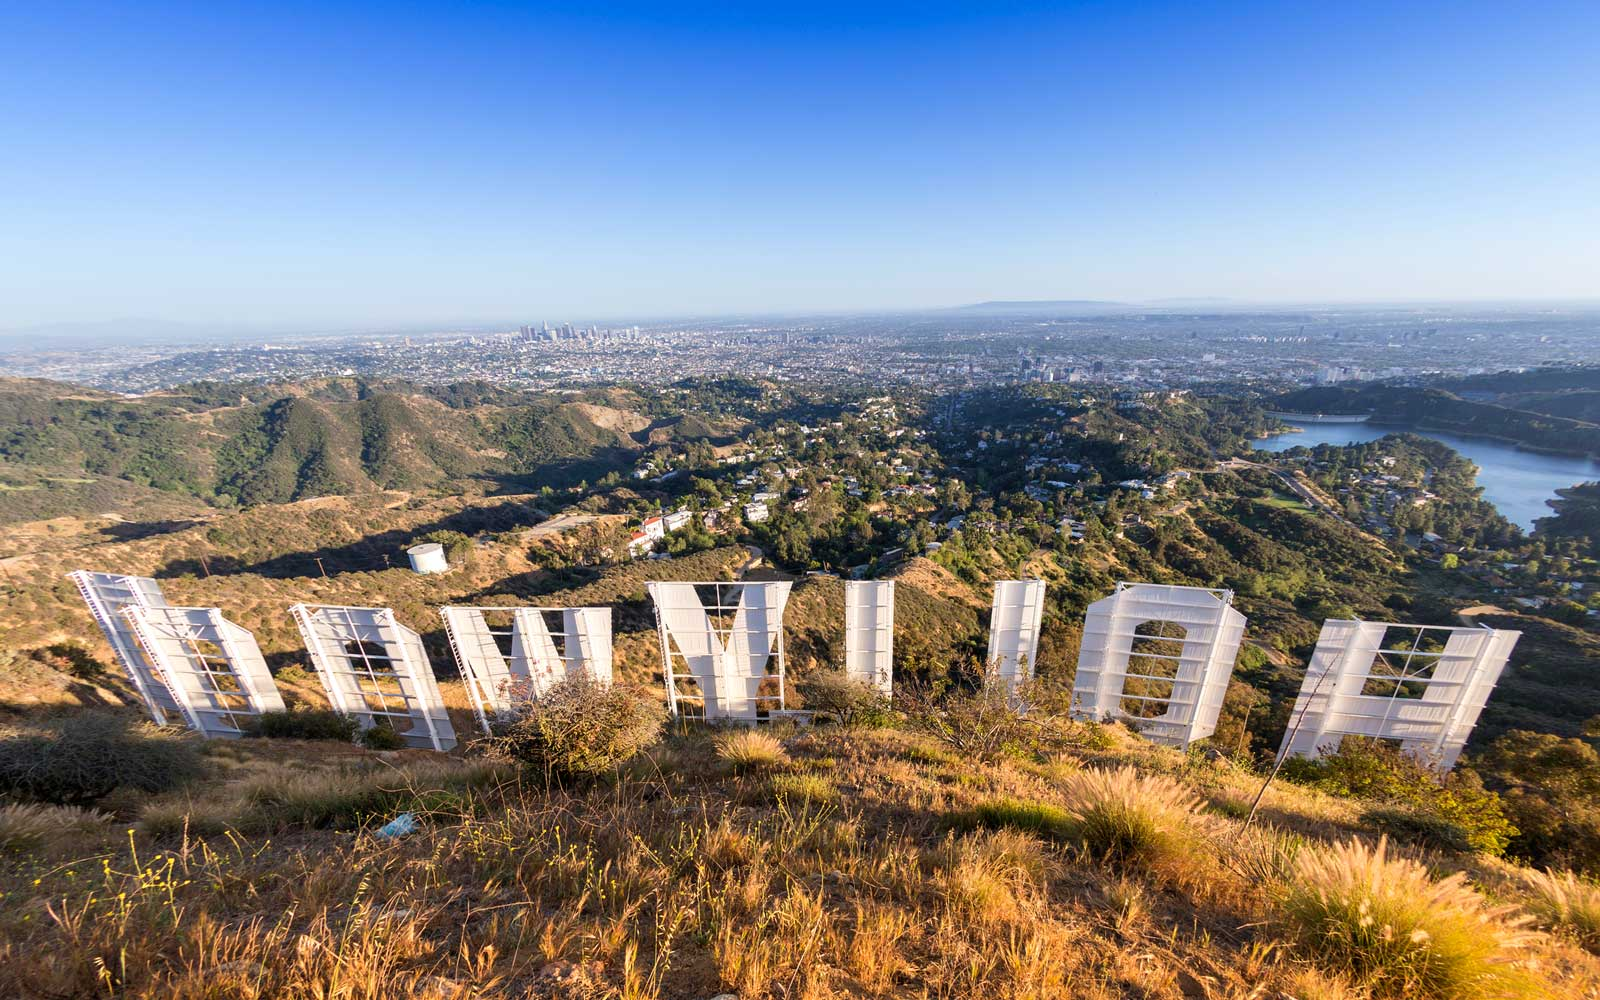 Hiking to the Hollywood Sign Could Soon Get More Difficult